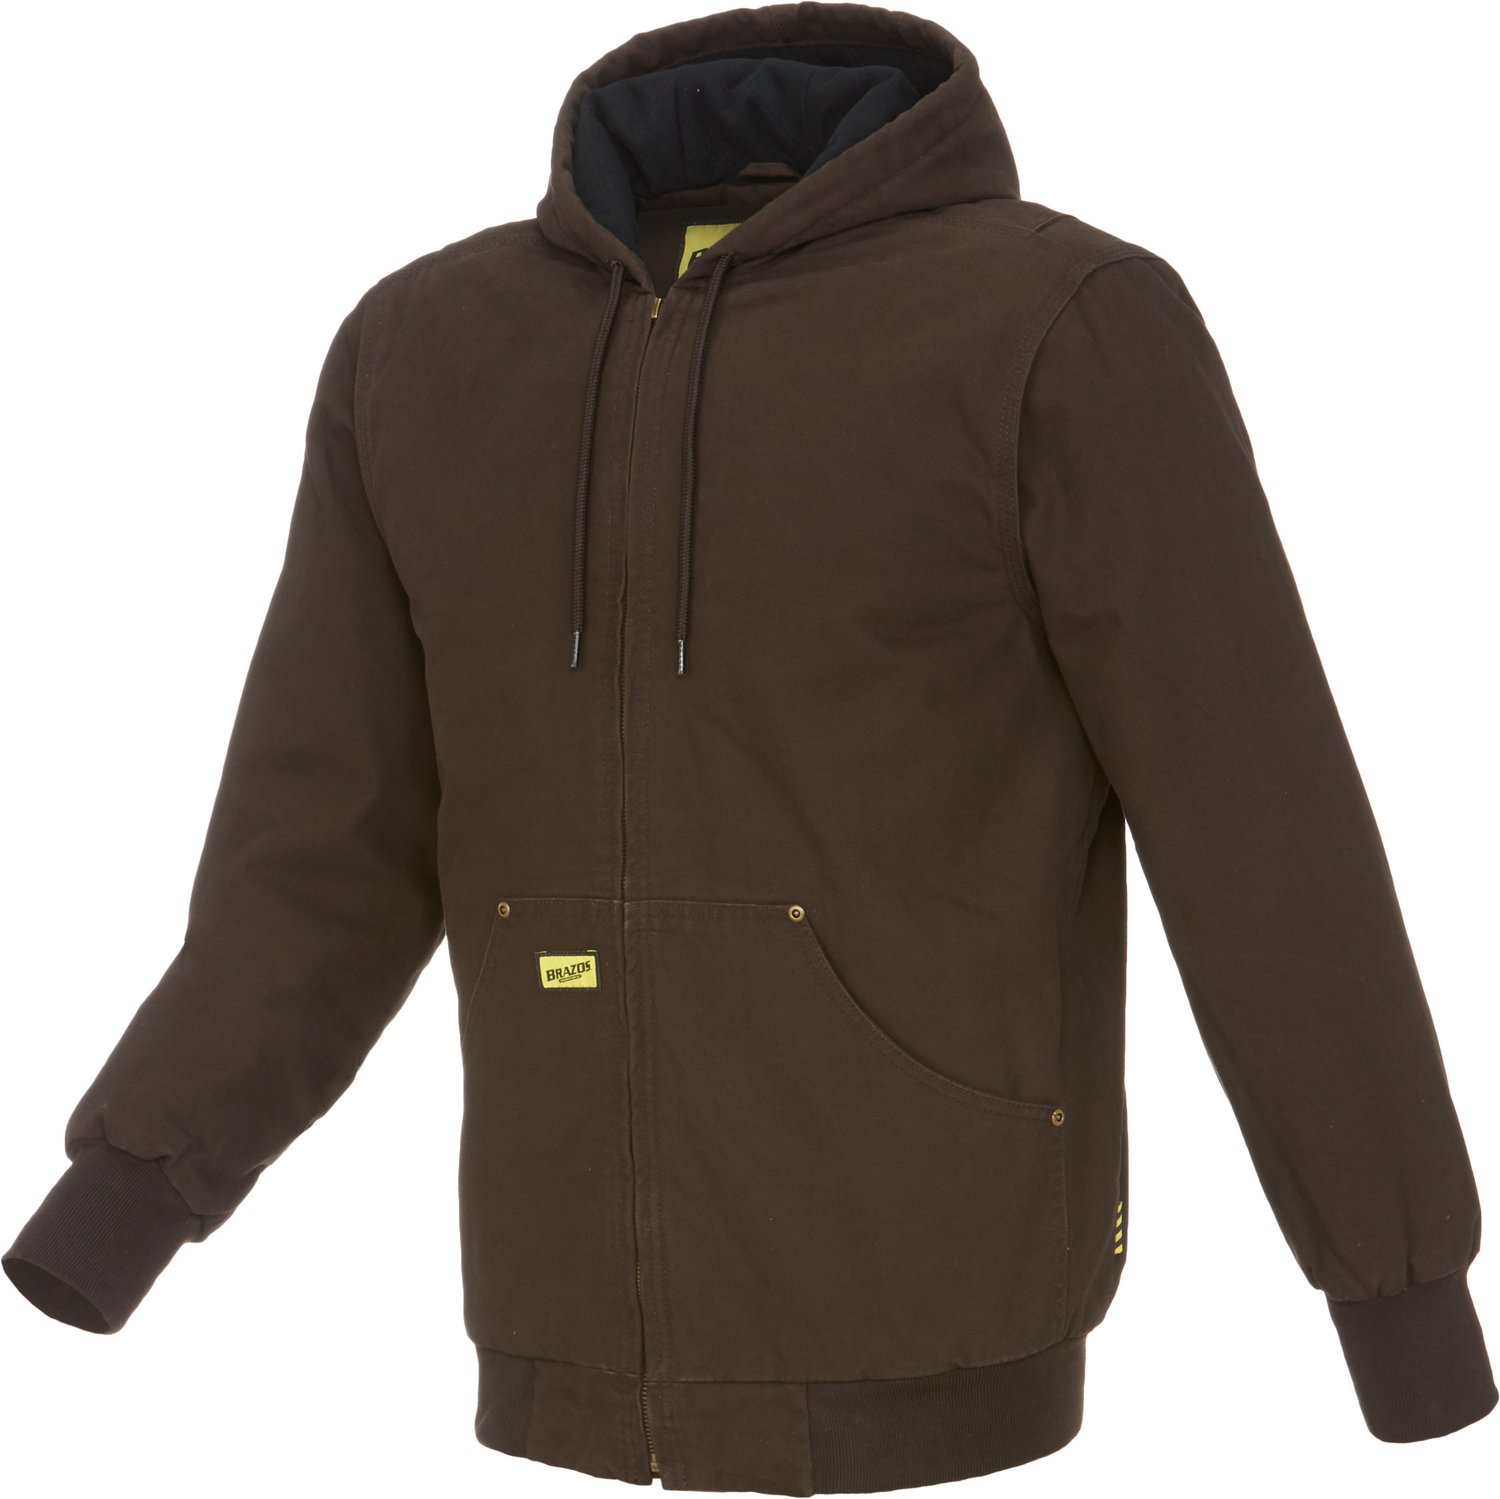 ec56ed0c75 Display product reviews for Brazos Men s Hooded Engineer Jacket